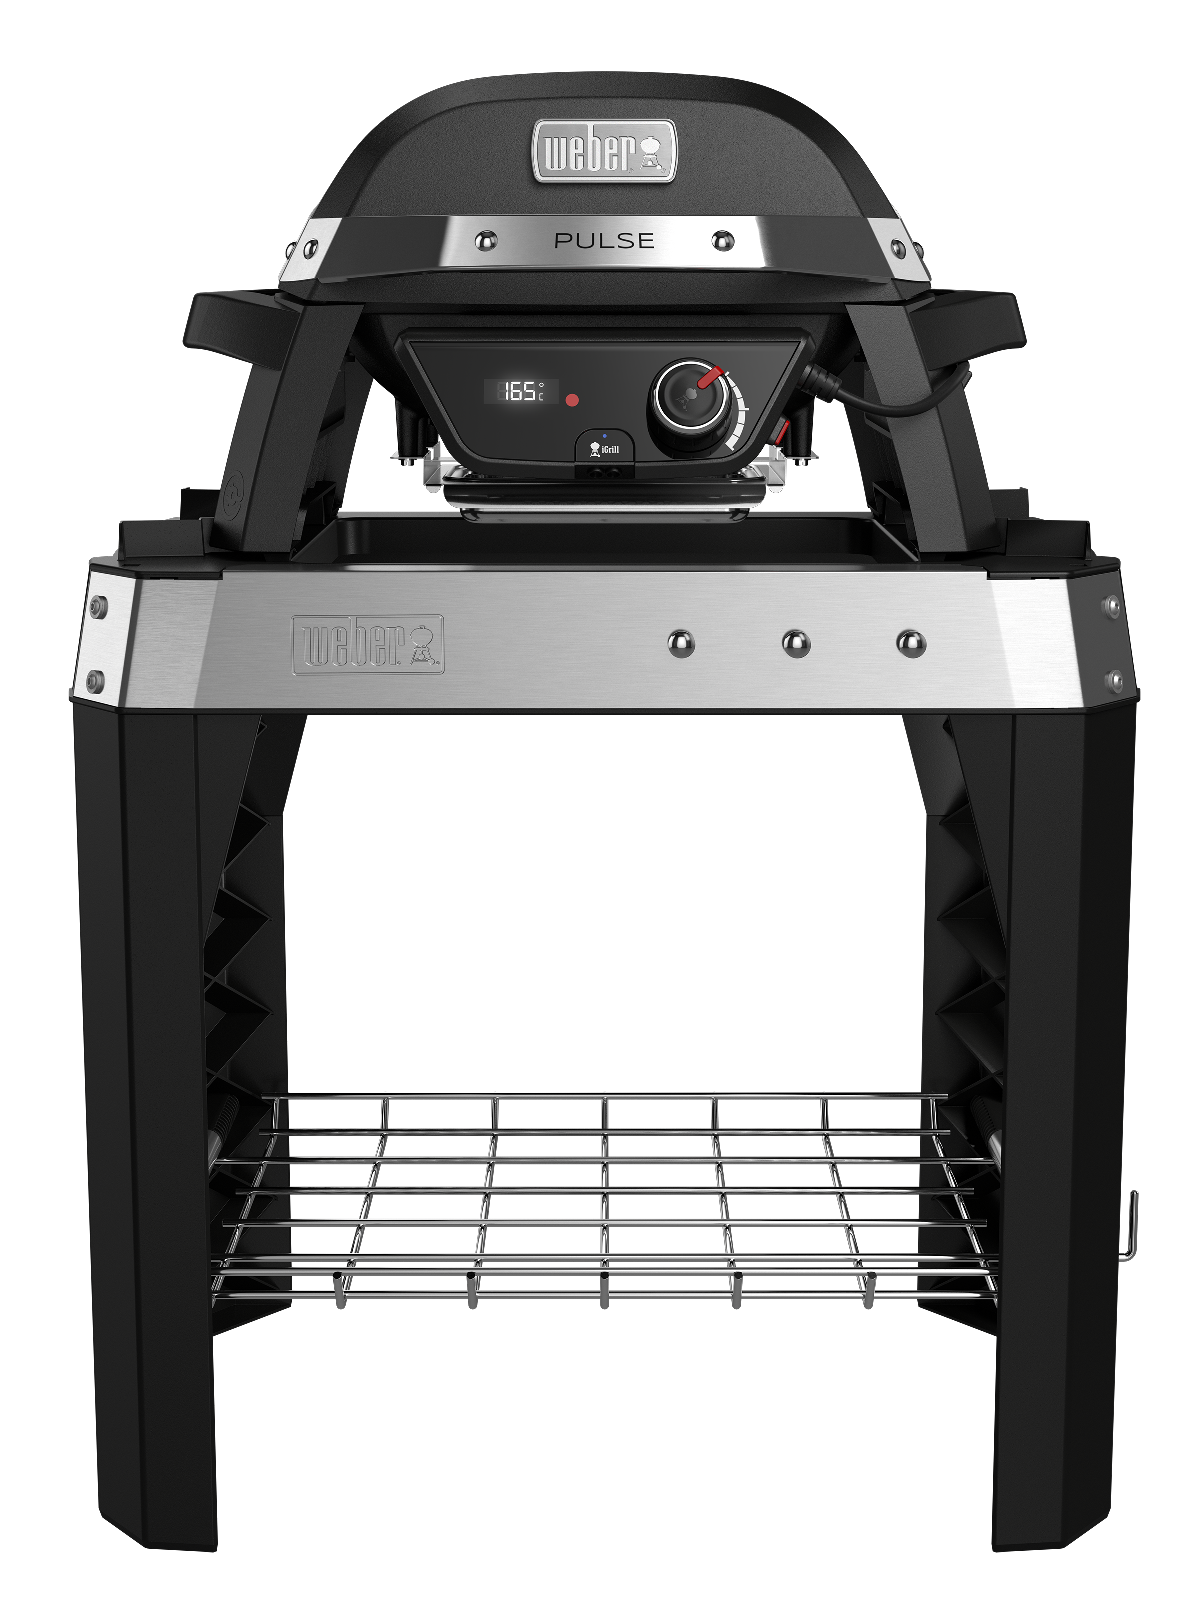 Weber Elektrogrill Pulse 1000 mit Stand